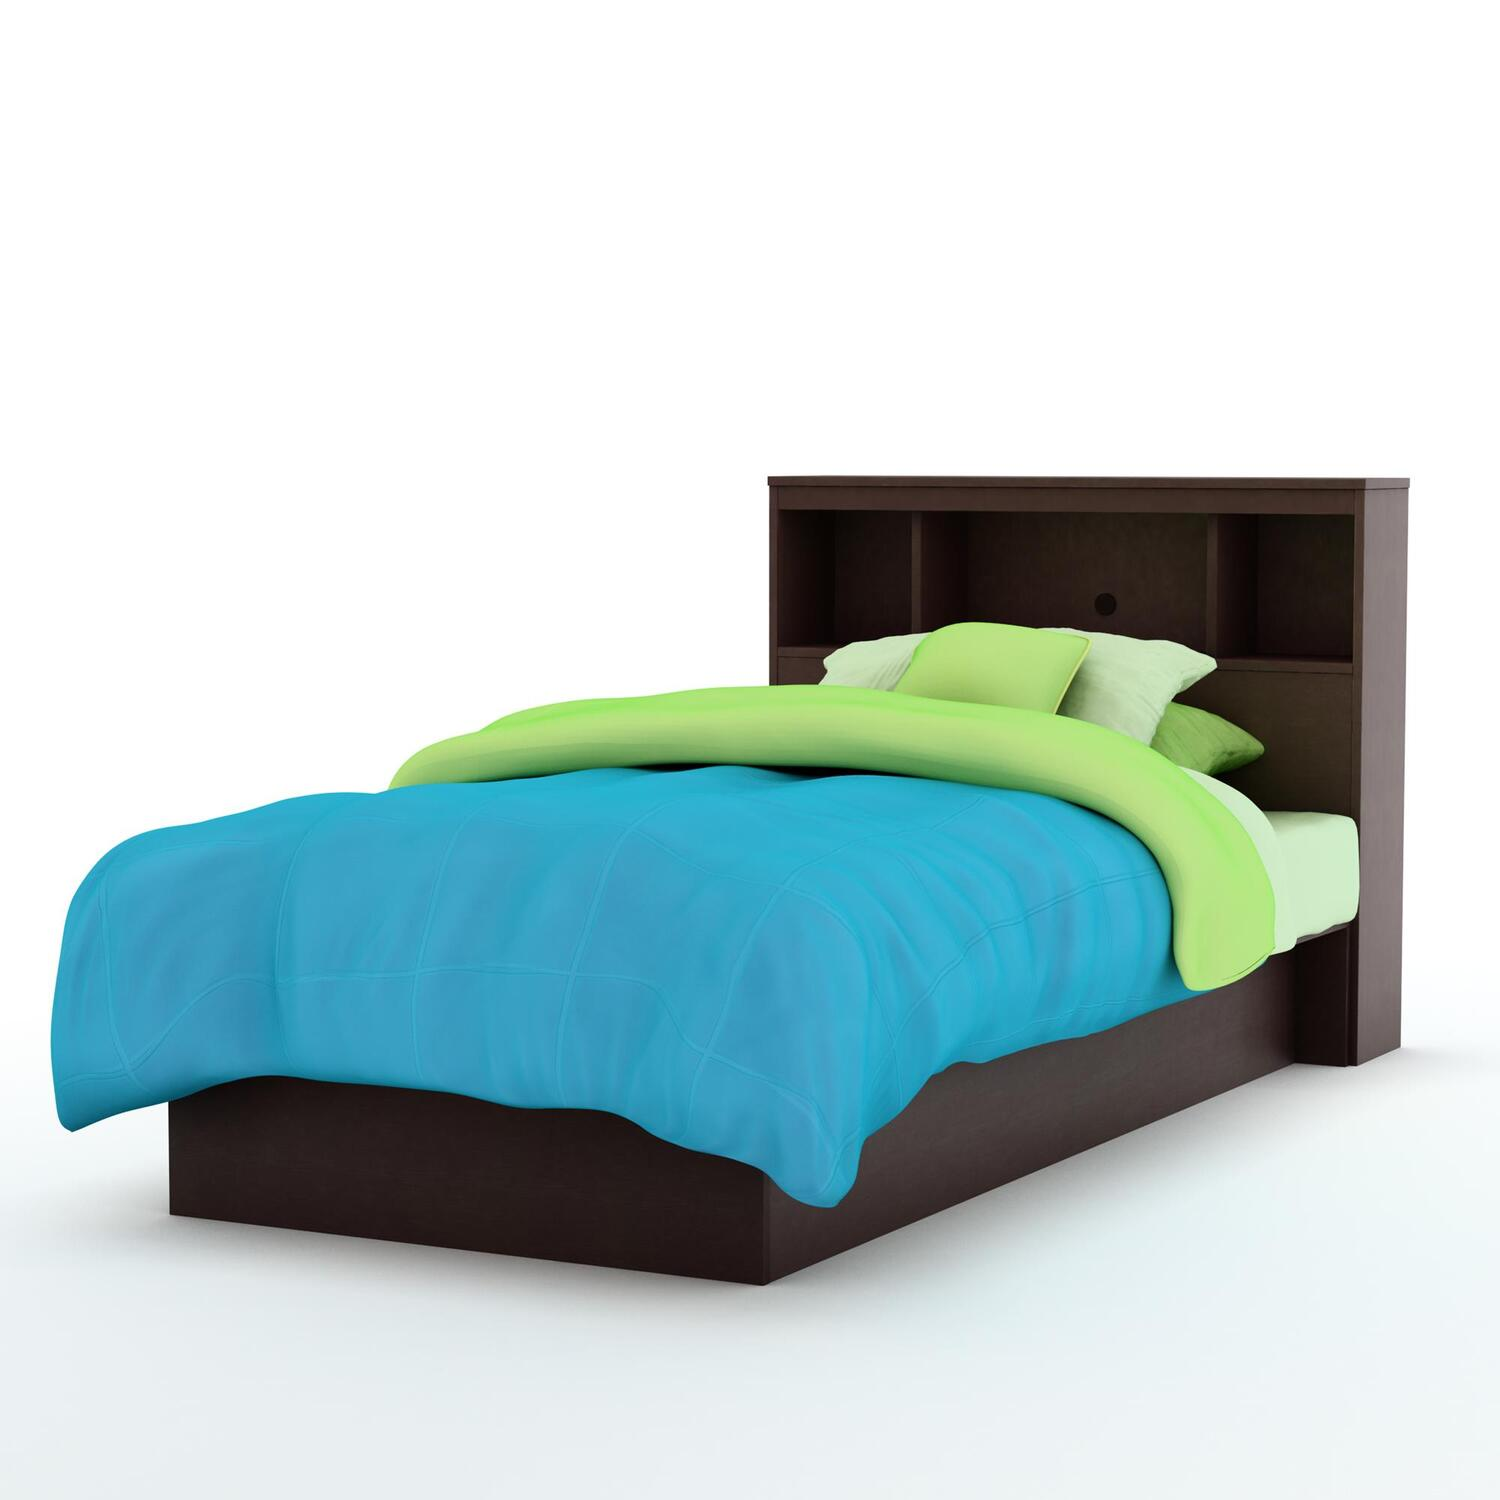 Libra twin platform bed bookcase headboard for Bookshelf bed headboard